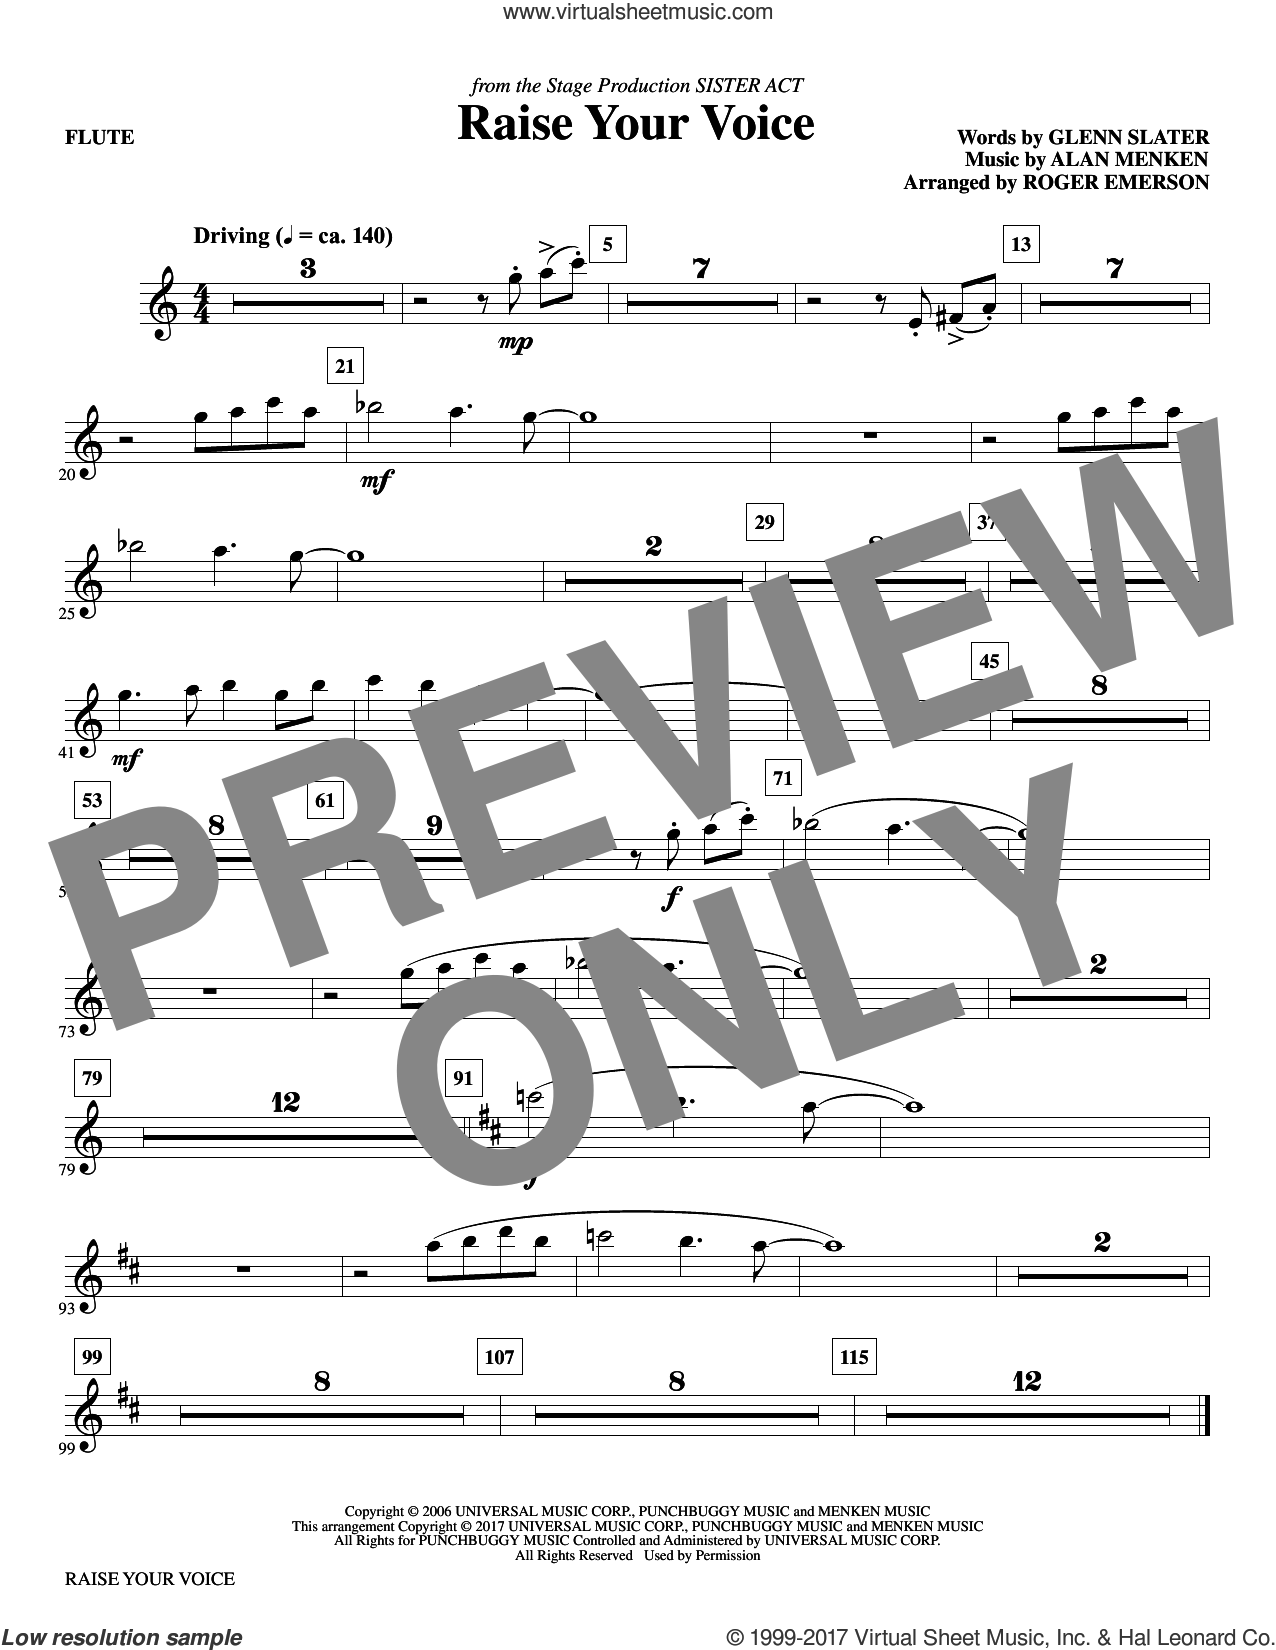 Raise Your Voice (complete set of parts) sheet music for orchestra/band by Alan Menken, Glenn Slater and Roger Emerson, intermediate skill level